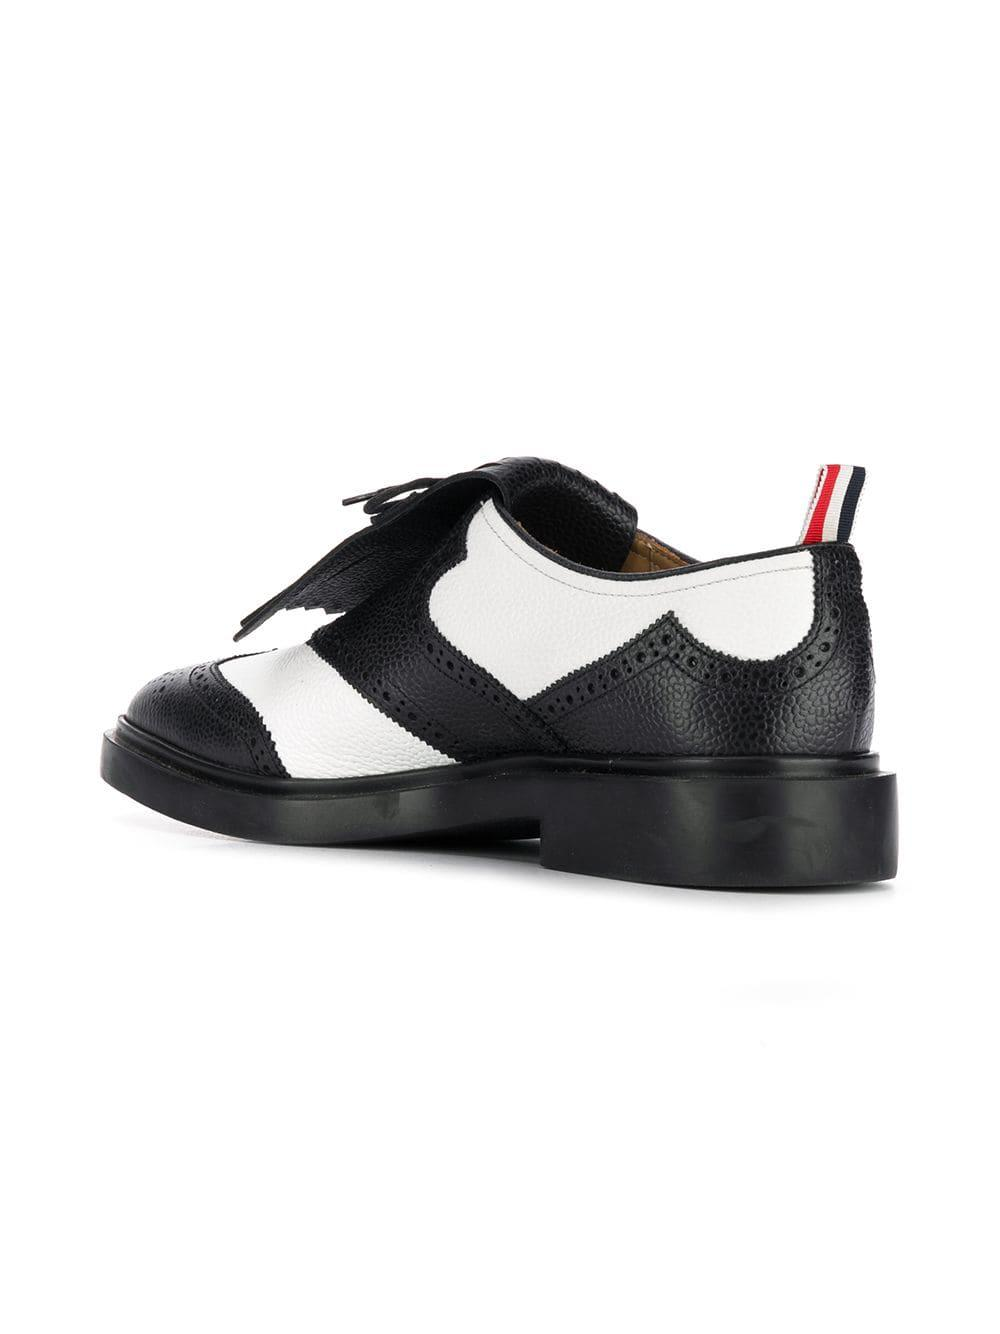 9dba3f433113 Thom Browne - White Pebbled Leather Kilt Brogue for Men - Lyst. View  fullscreen